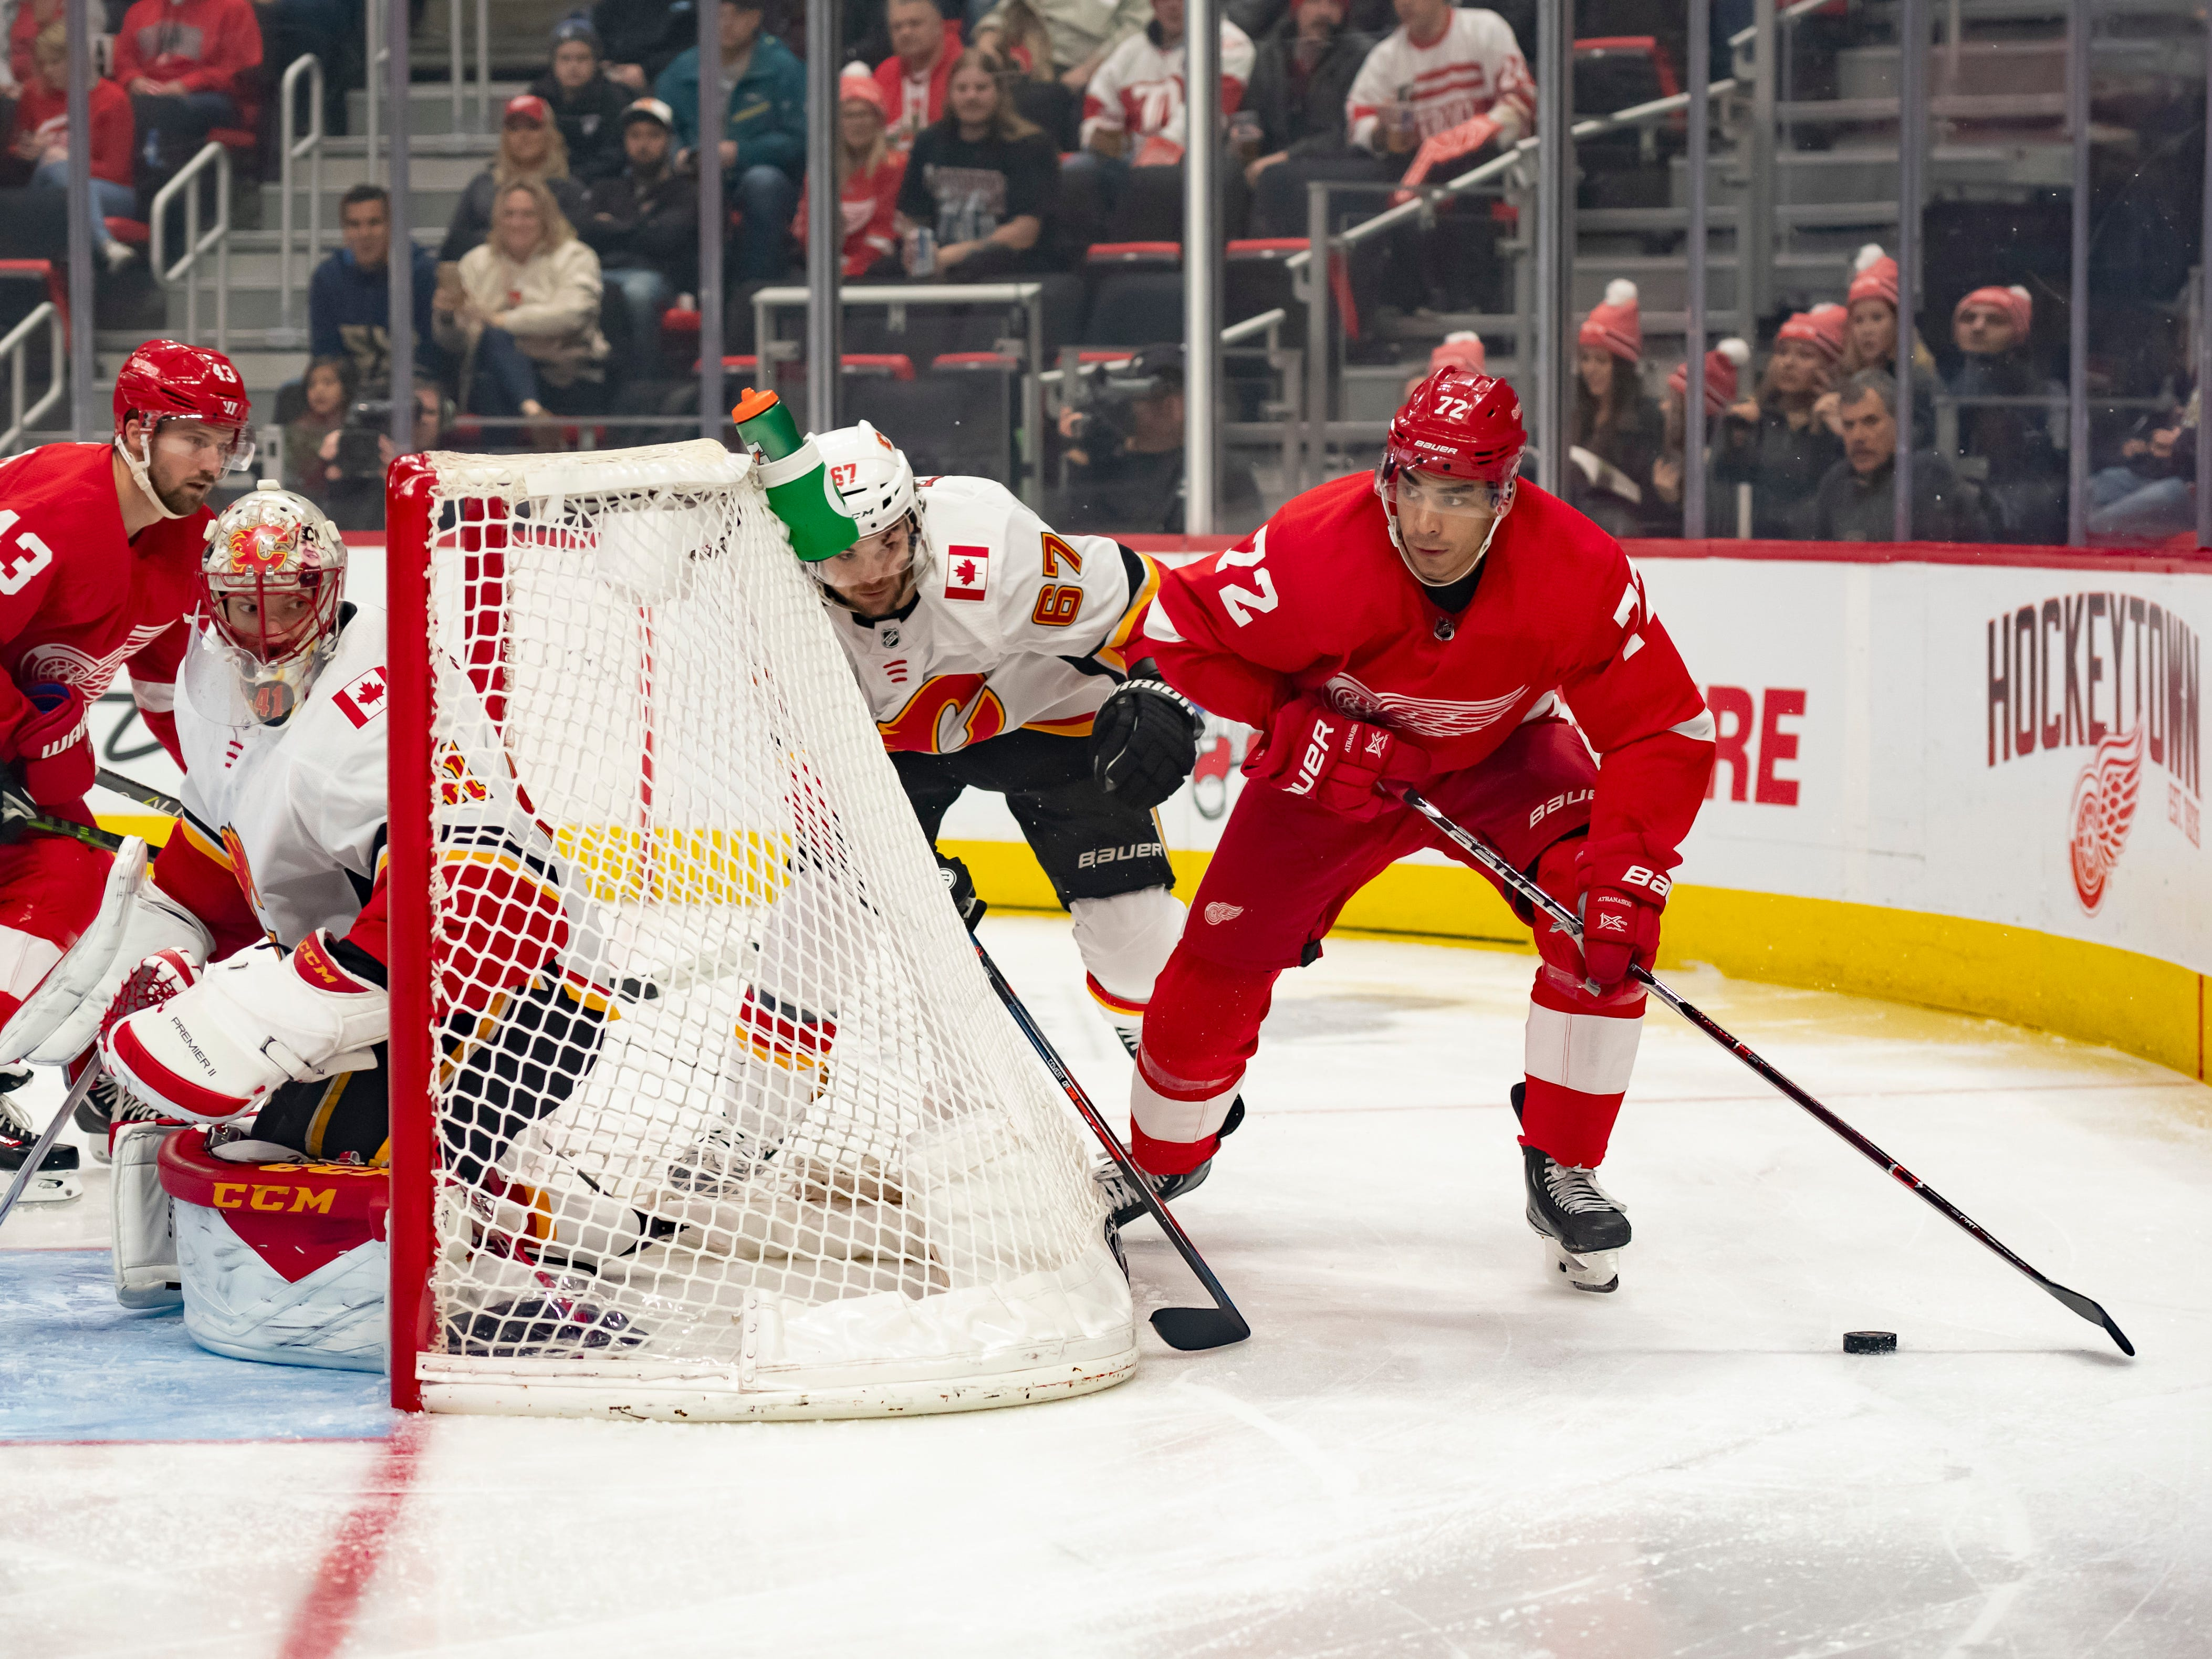 Detroit center Andreas Athanasiou looks for an open man in the first period.